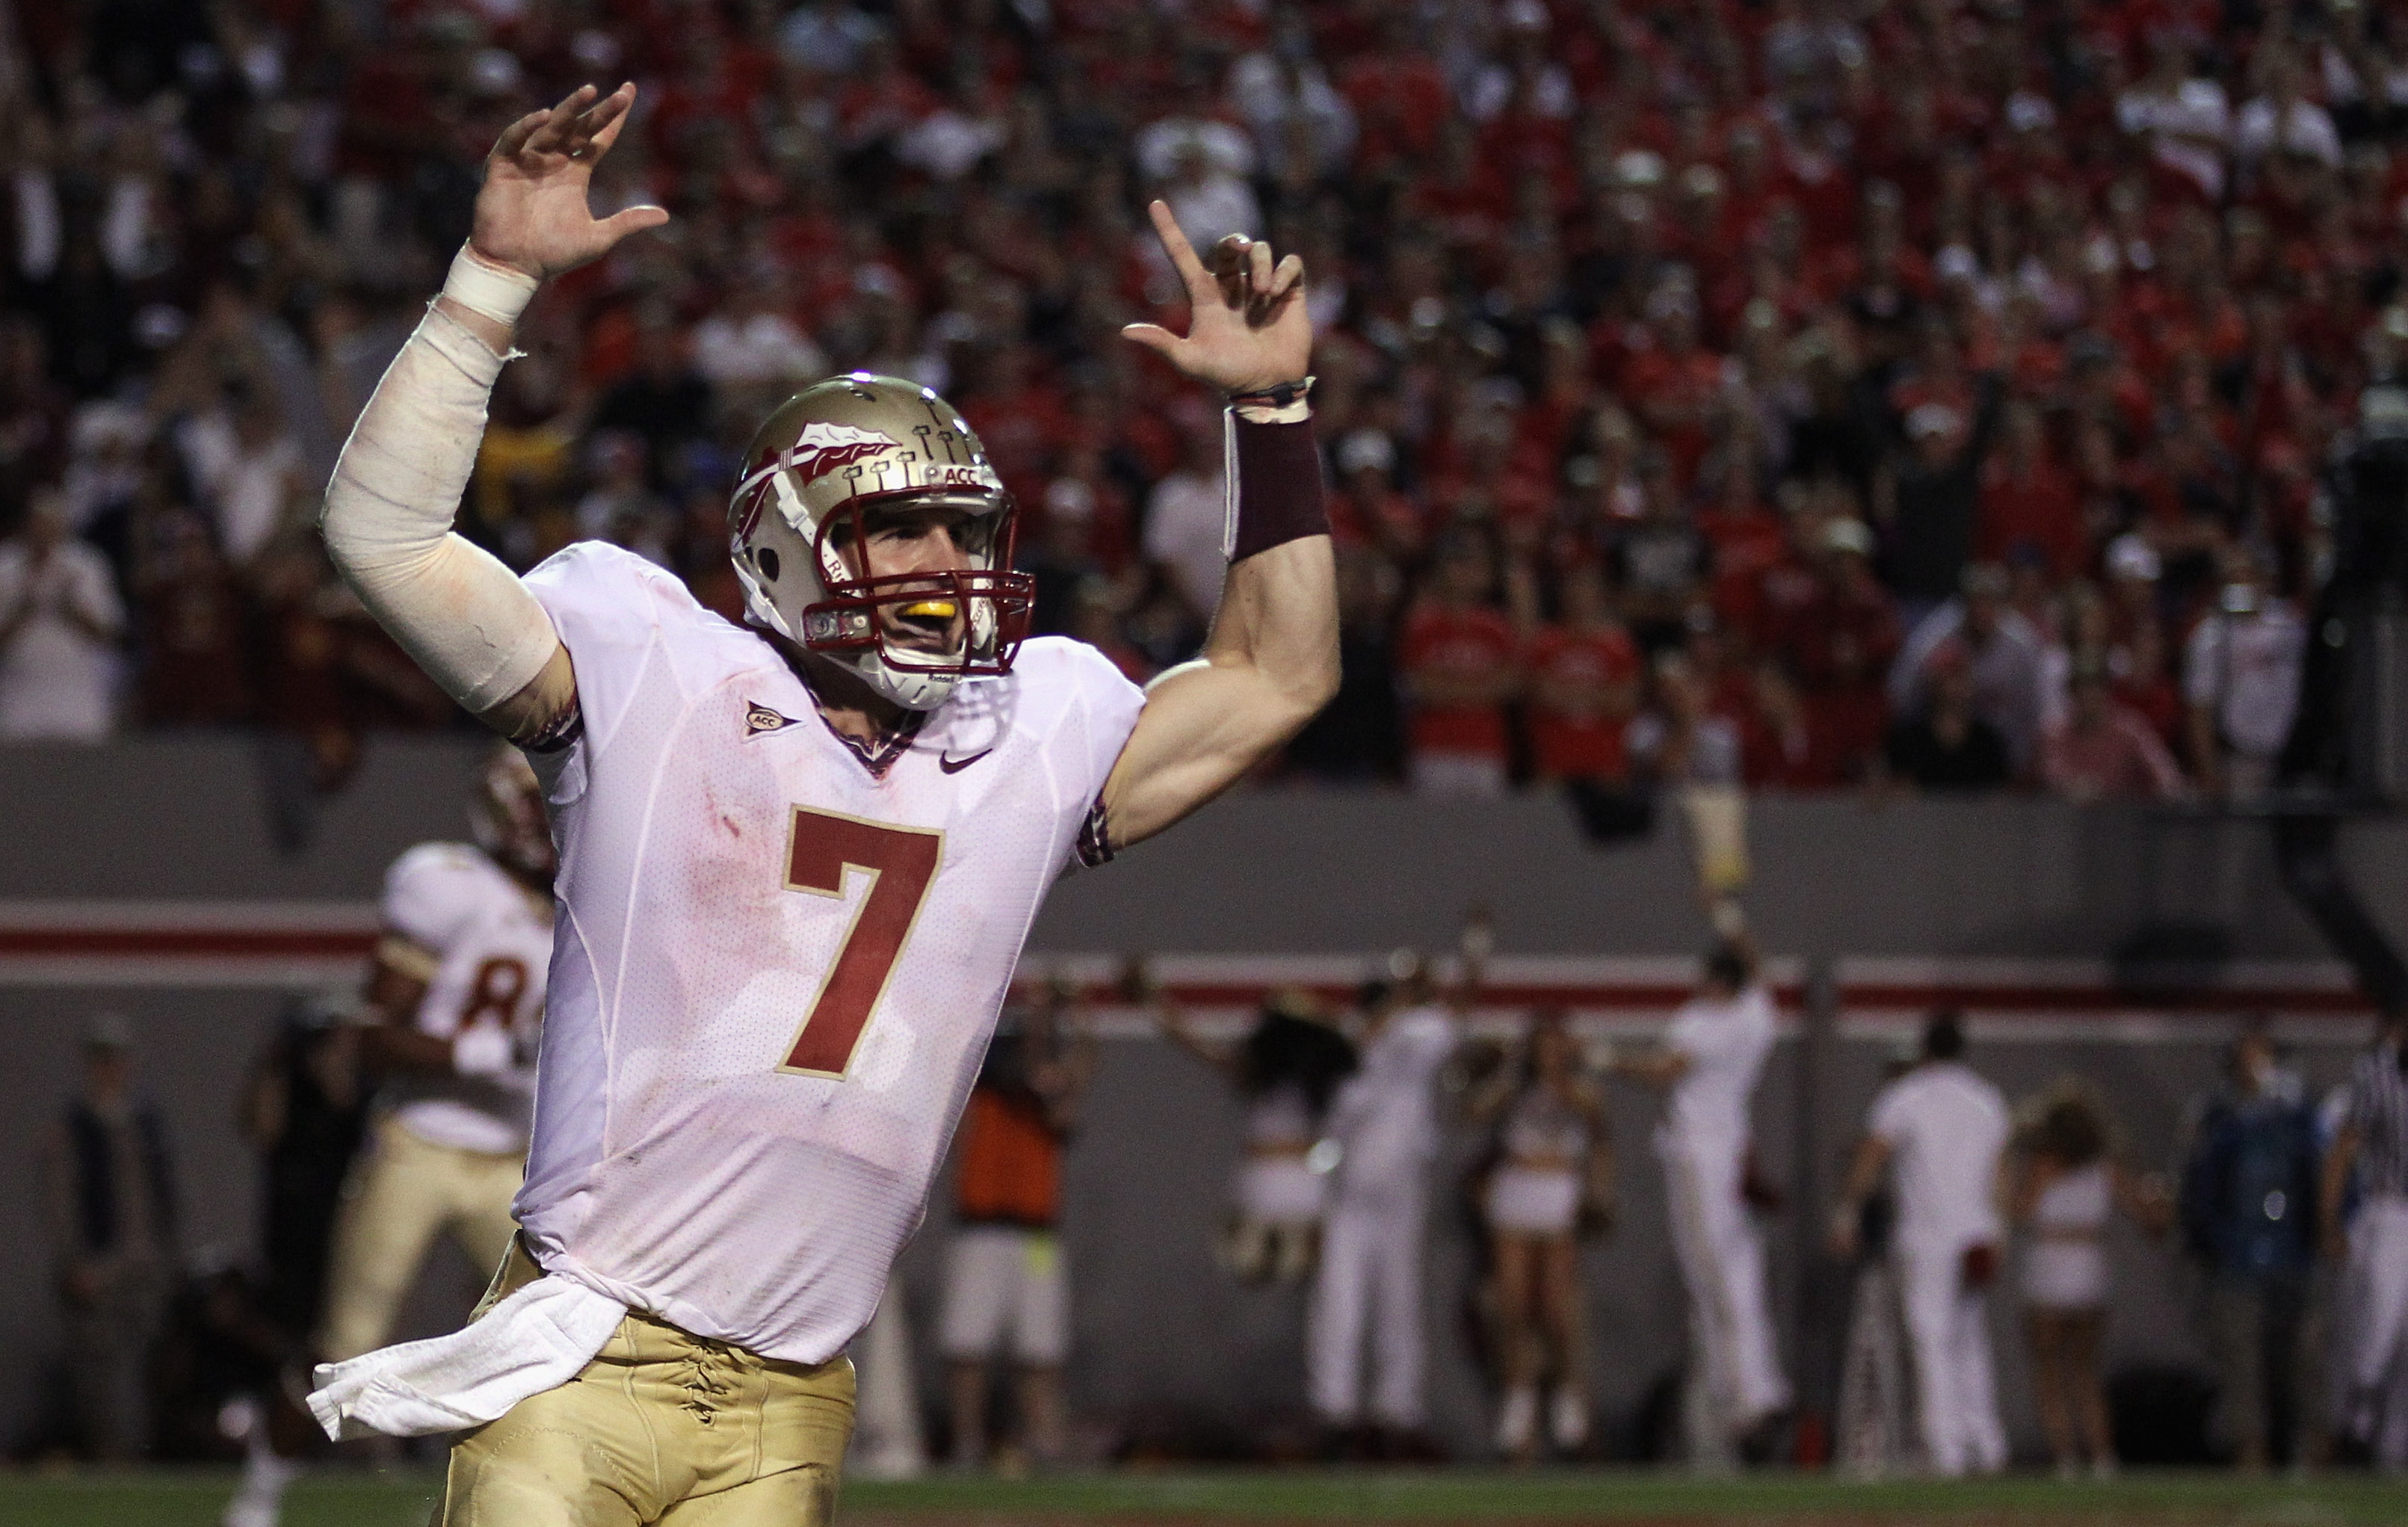 RALEIGH, NC - OCTOBER 28:  Christian Ponder #7 of the Florida State Seminoles celebrates after scoring a touchdown against the North Carolina State Wolfpack during their game at Carter-Finley Stadium on October 28, 2010 in Raleigh, North Carolina.  (Photo